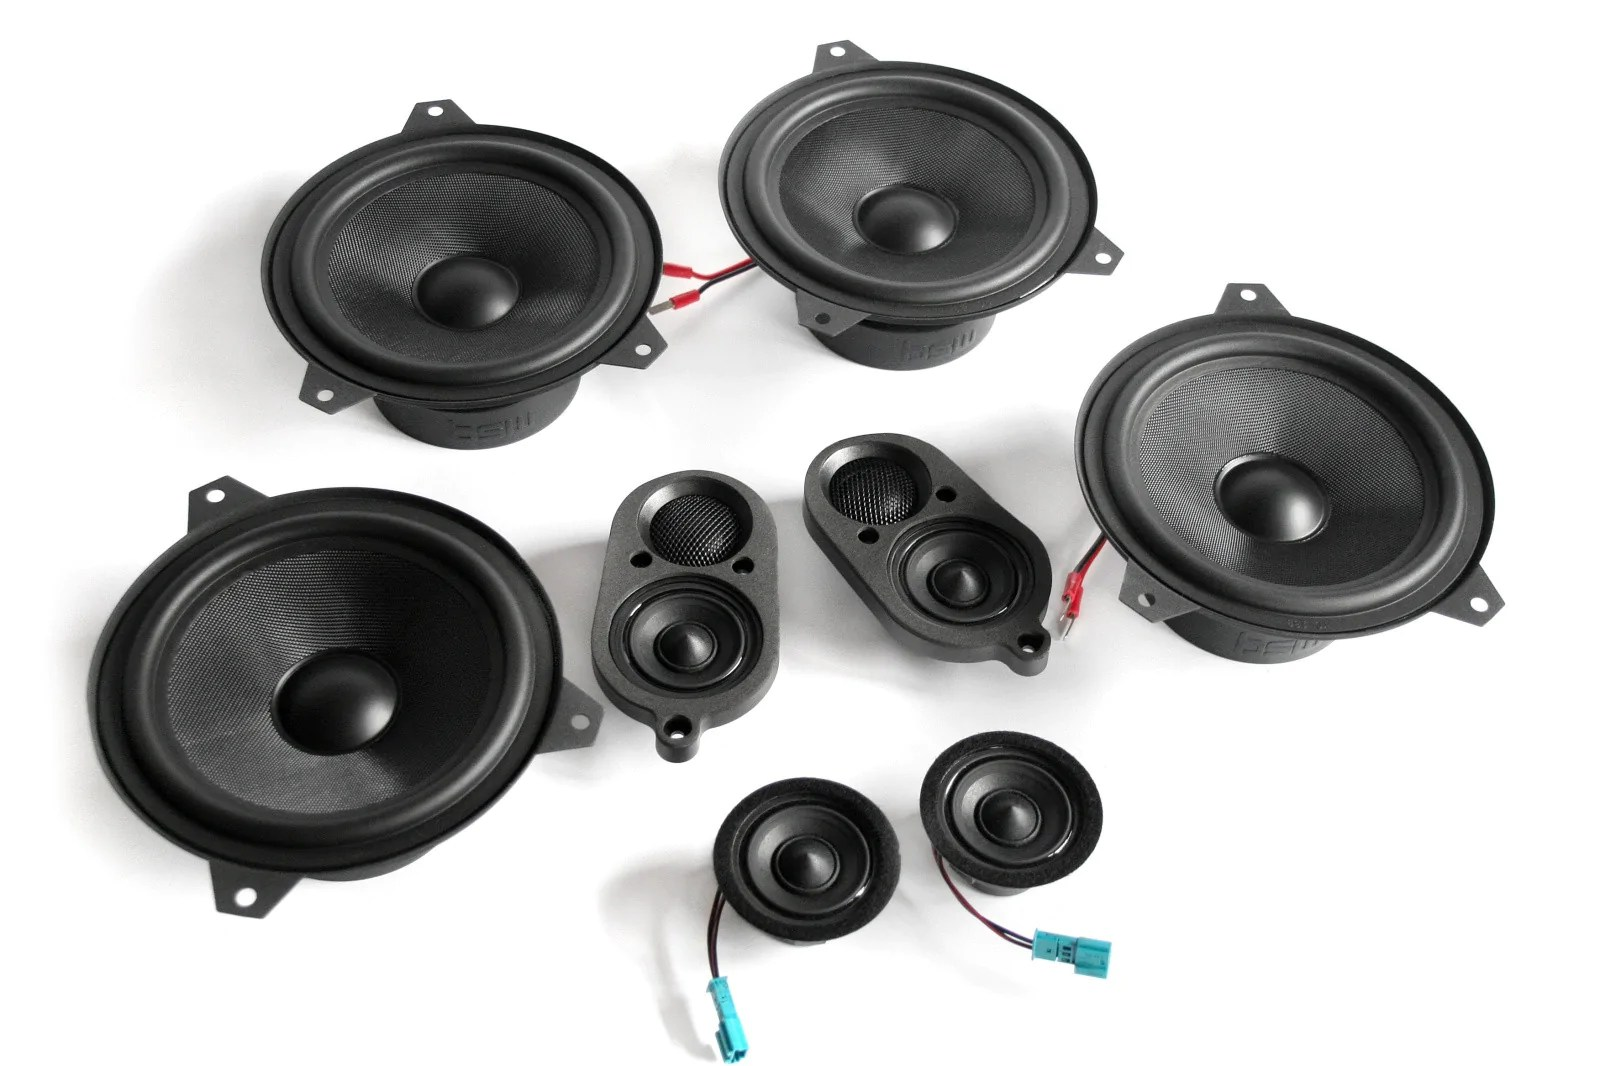 medium resolution of bmw speaker upgrade for e46 coupe with harman kardon